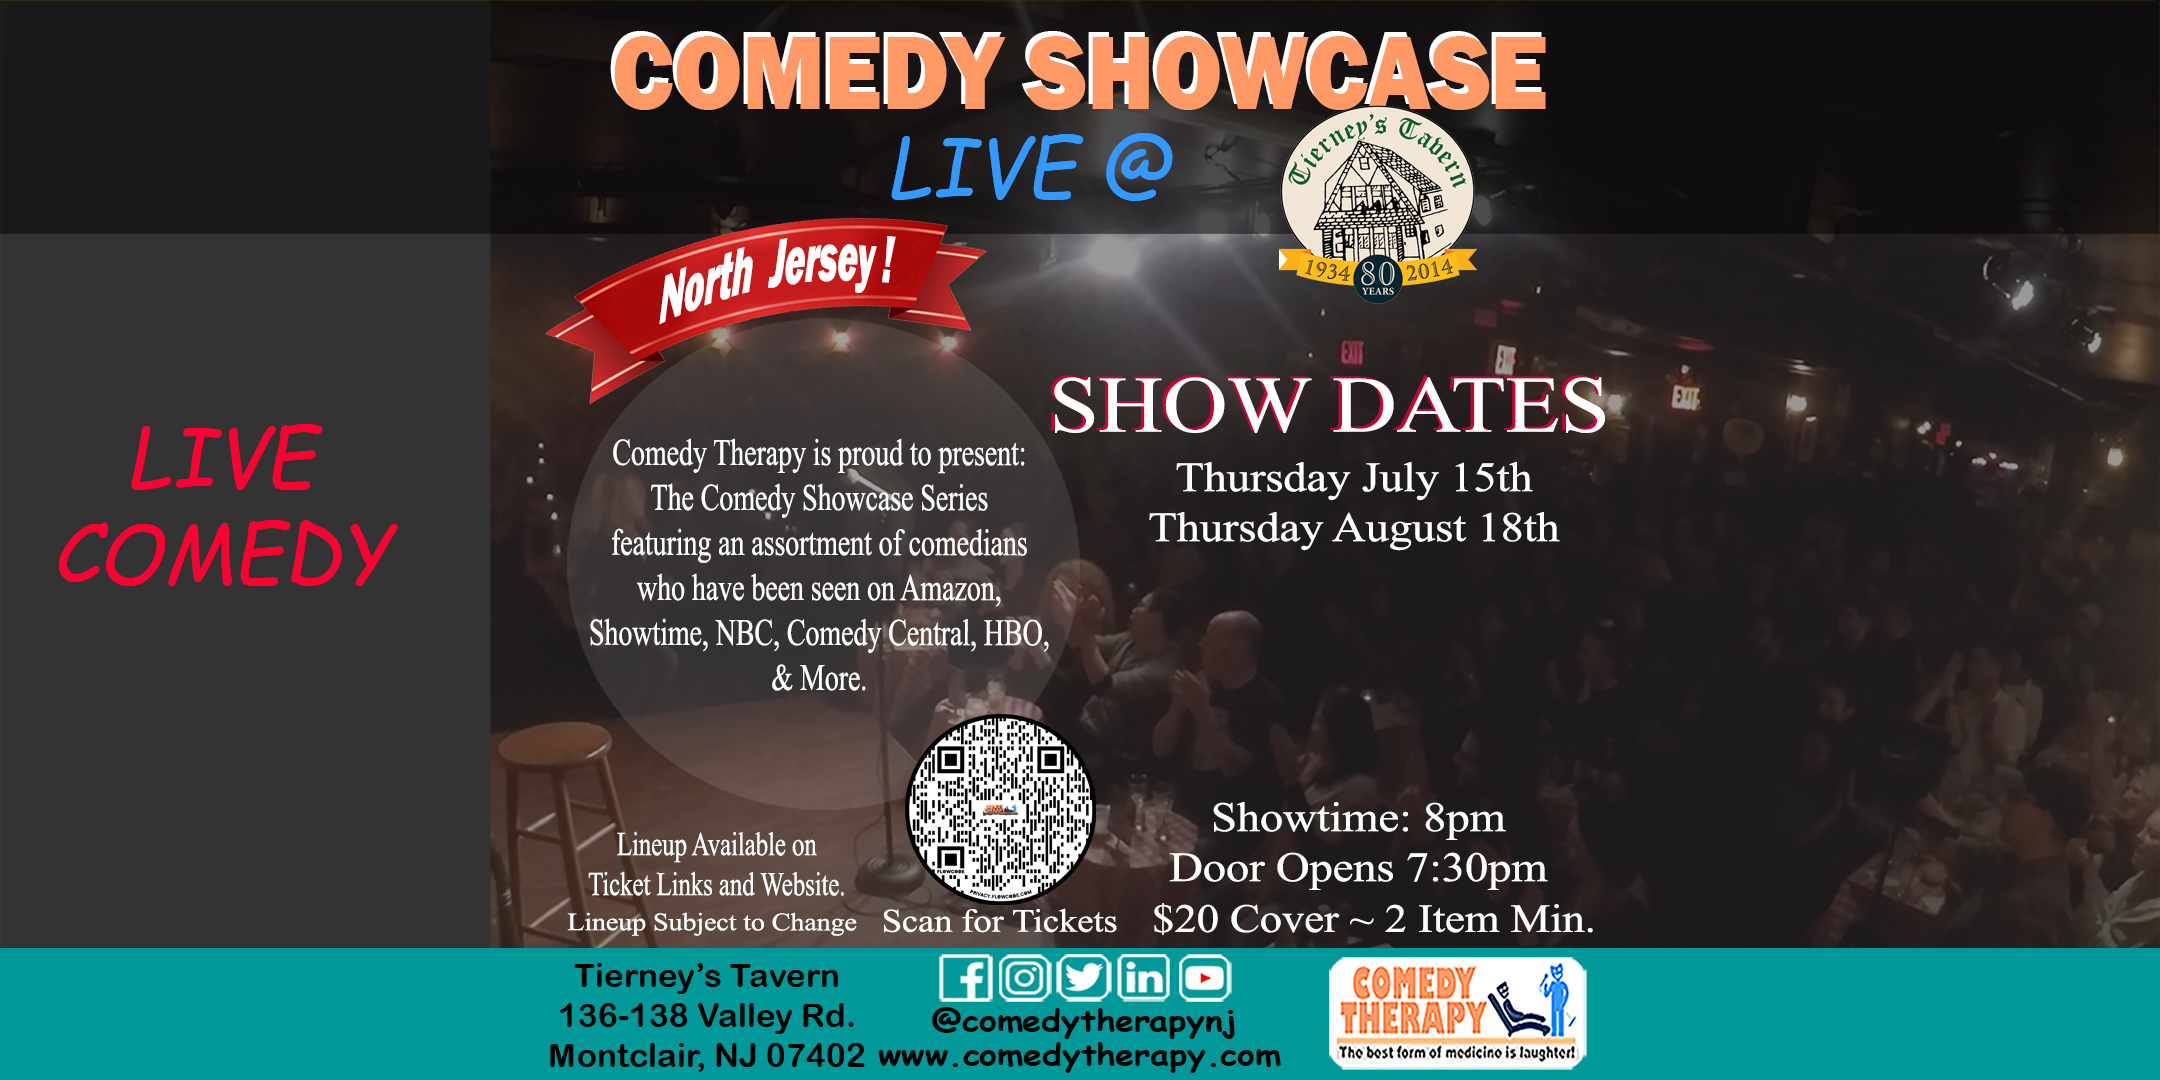 Northern Jersey Comedy Showcase